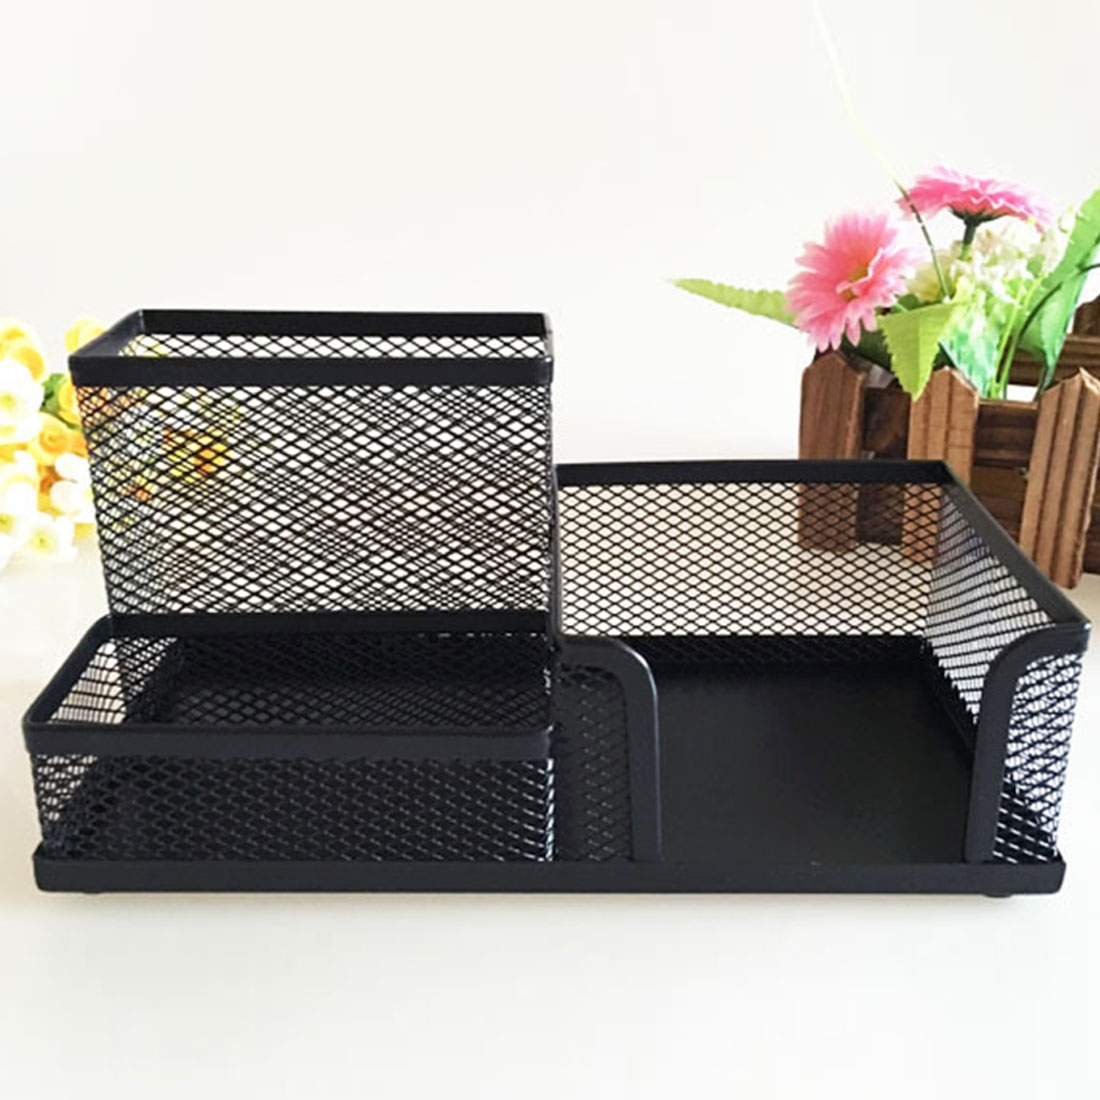 2 PCS Creative Metal Mesh Combined Pen Holder Multifunction Stationery Storage Box